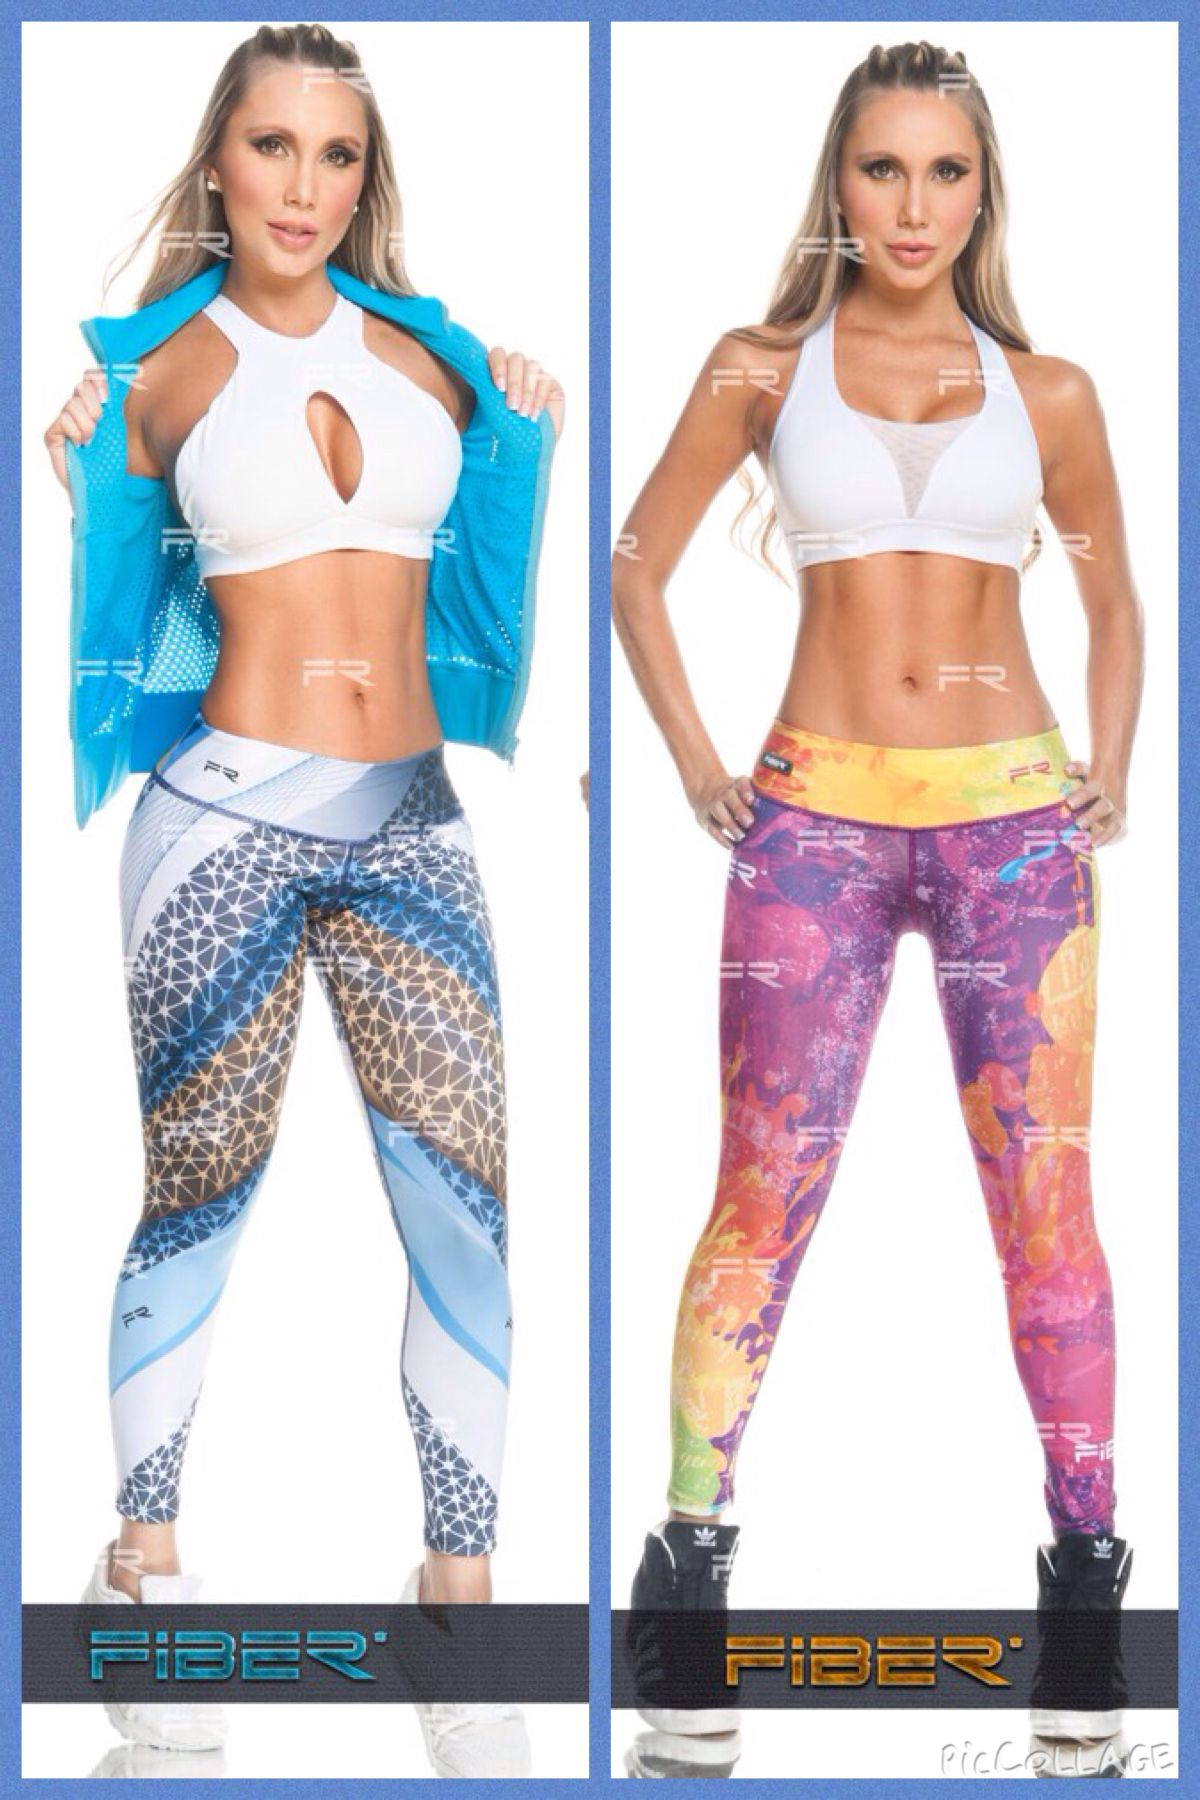 76d81bacf4c05 Fiber Colombian Printed Leggings for women. Compression Tights Dry fit  product for running and workout Follow IG @activewearfashion or ...